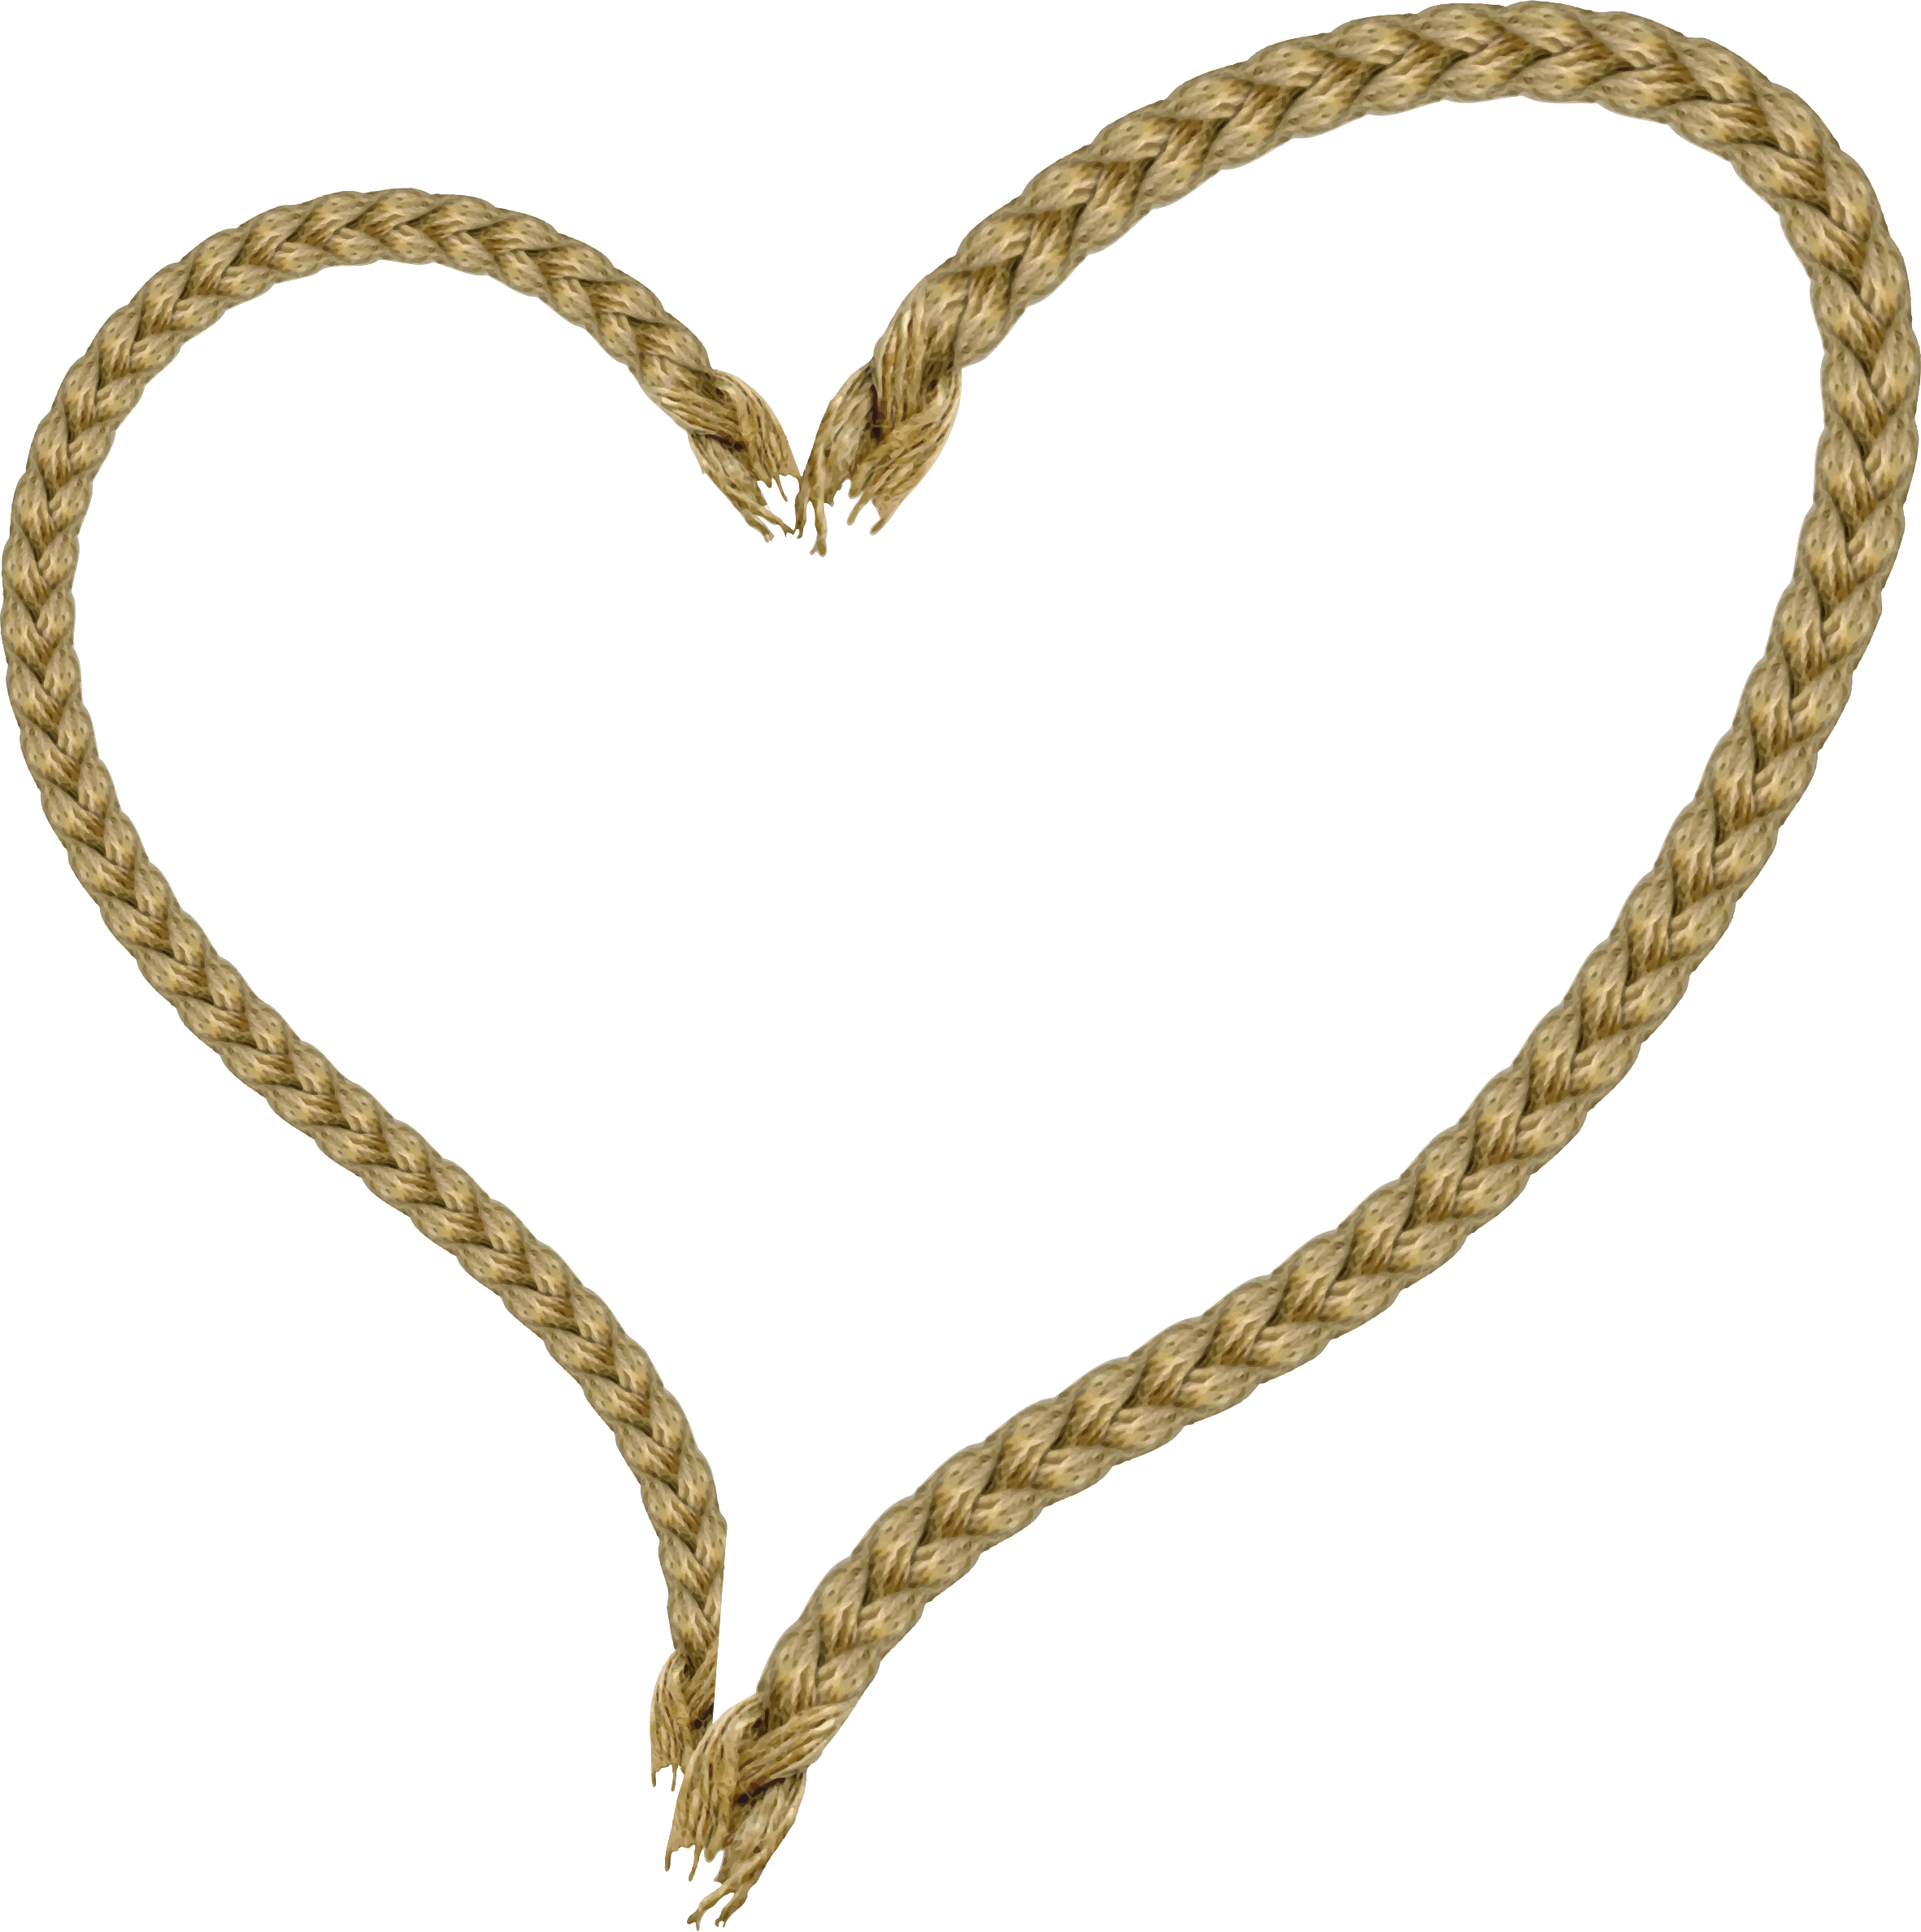 Heart big image png. Clipart hearts rope